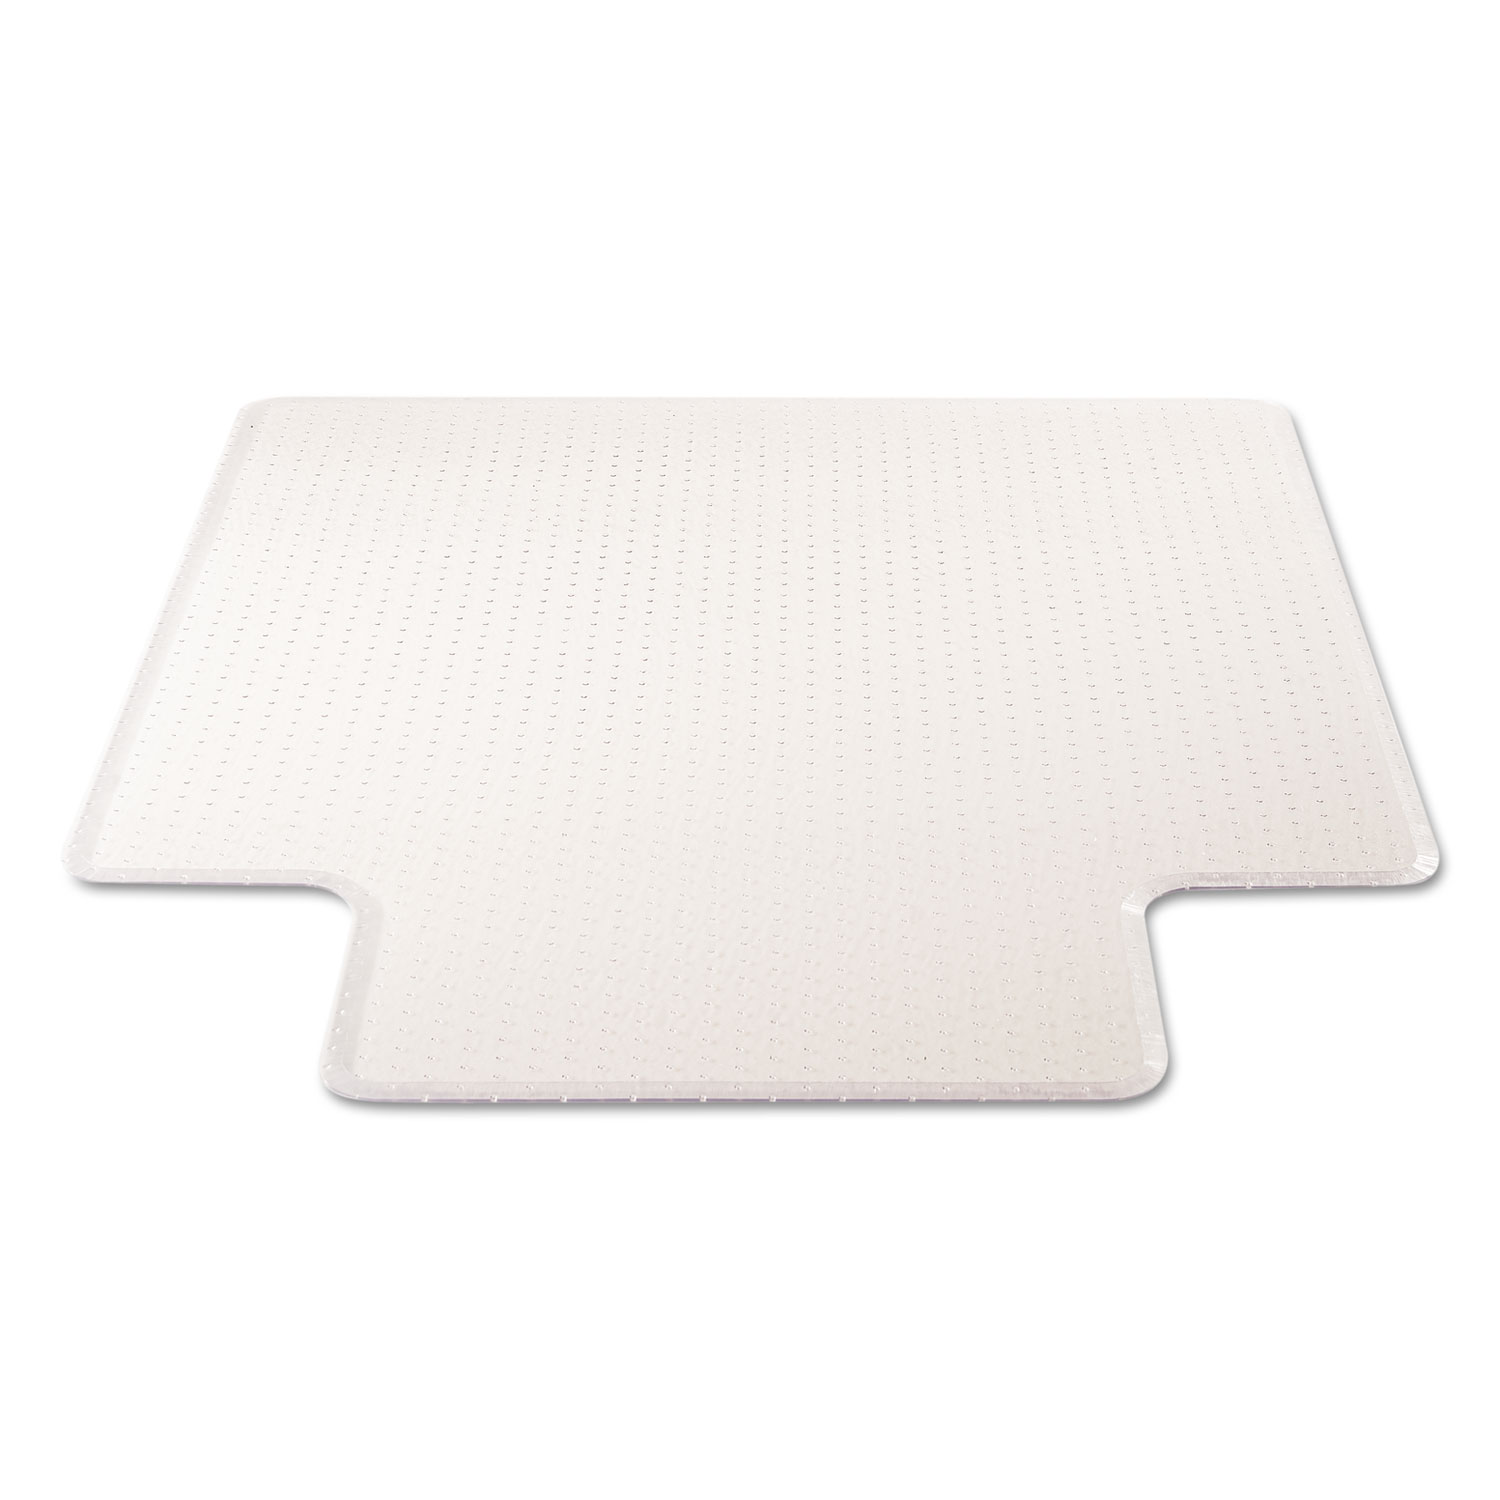 office chair mat 45 x 60 white wooden ikea execumat intense all day use for high pile carpet by deflecto® defcm17233 ...